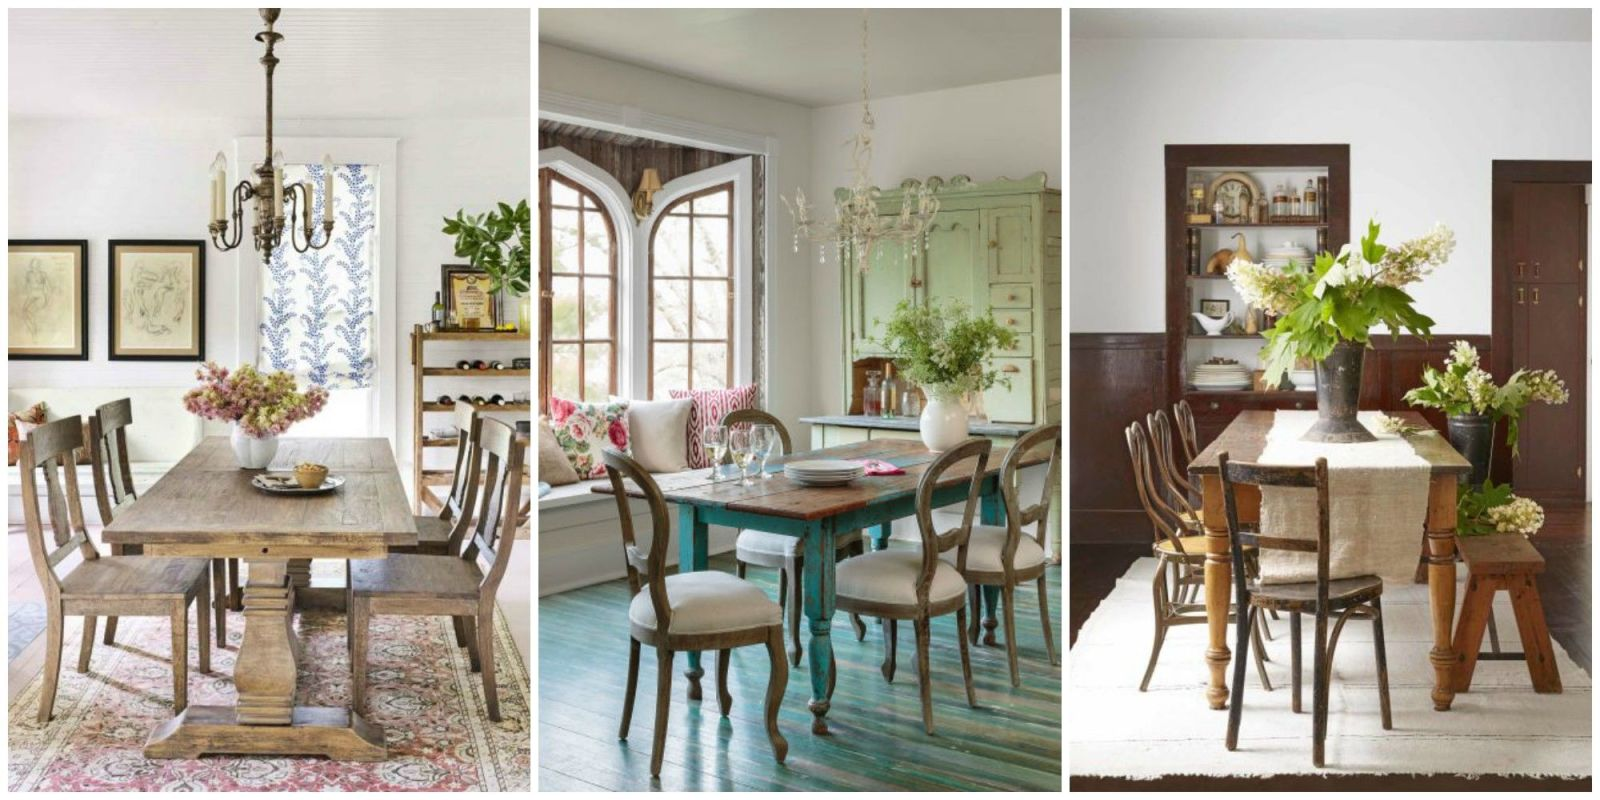 Do Rugs Belong in the Dining Room or Not?